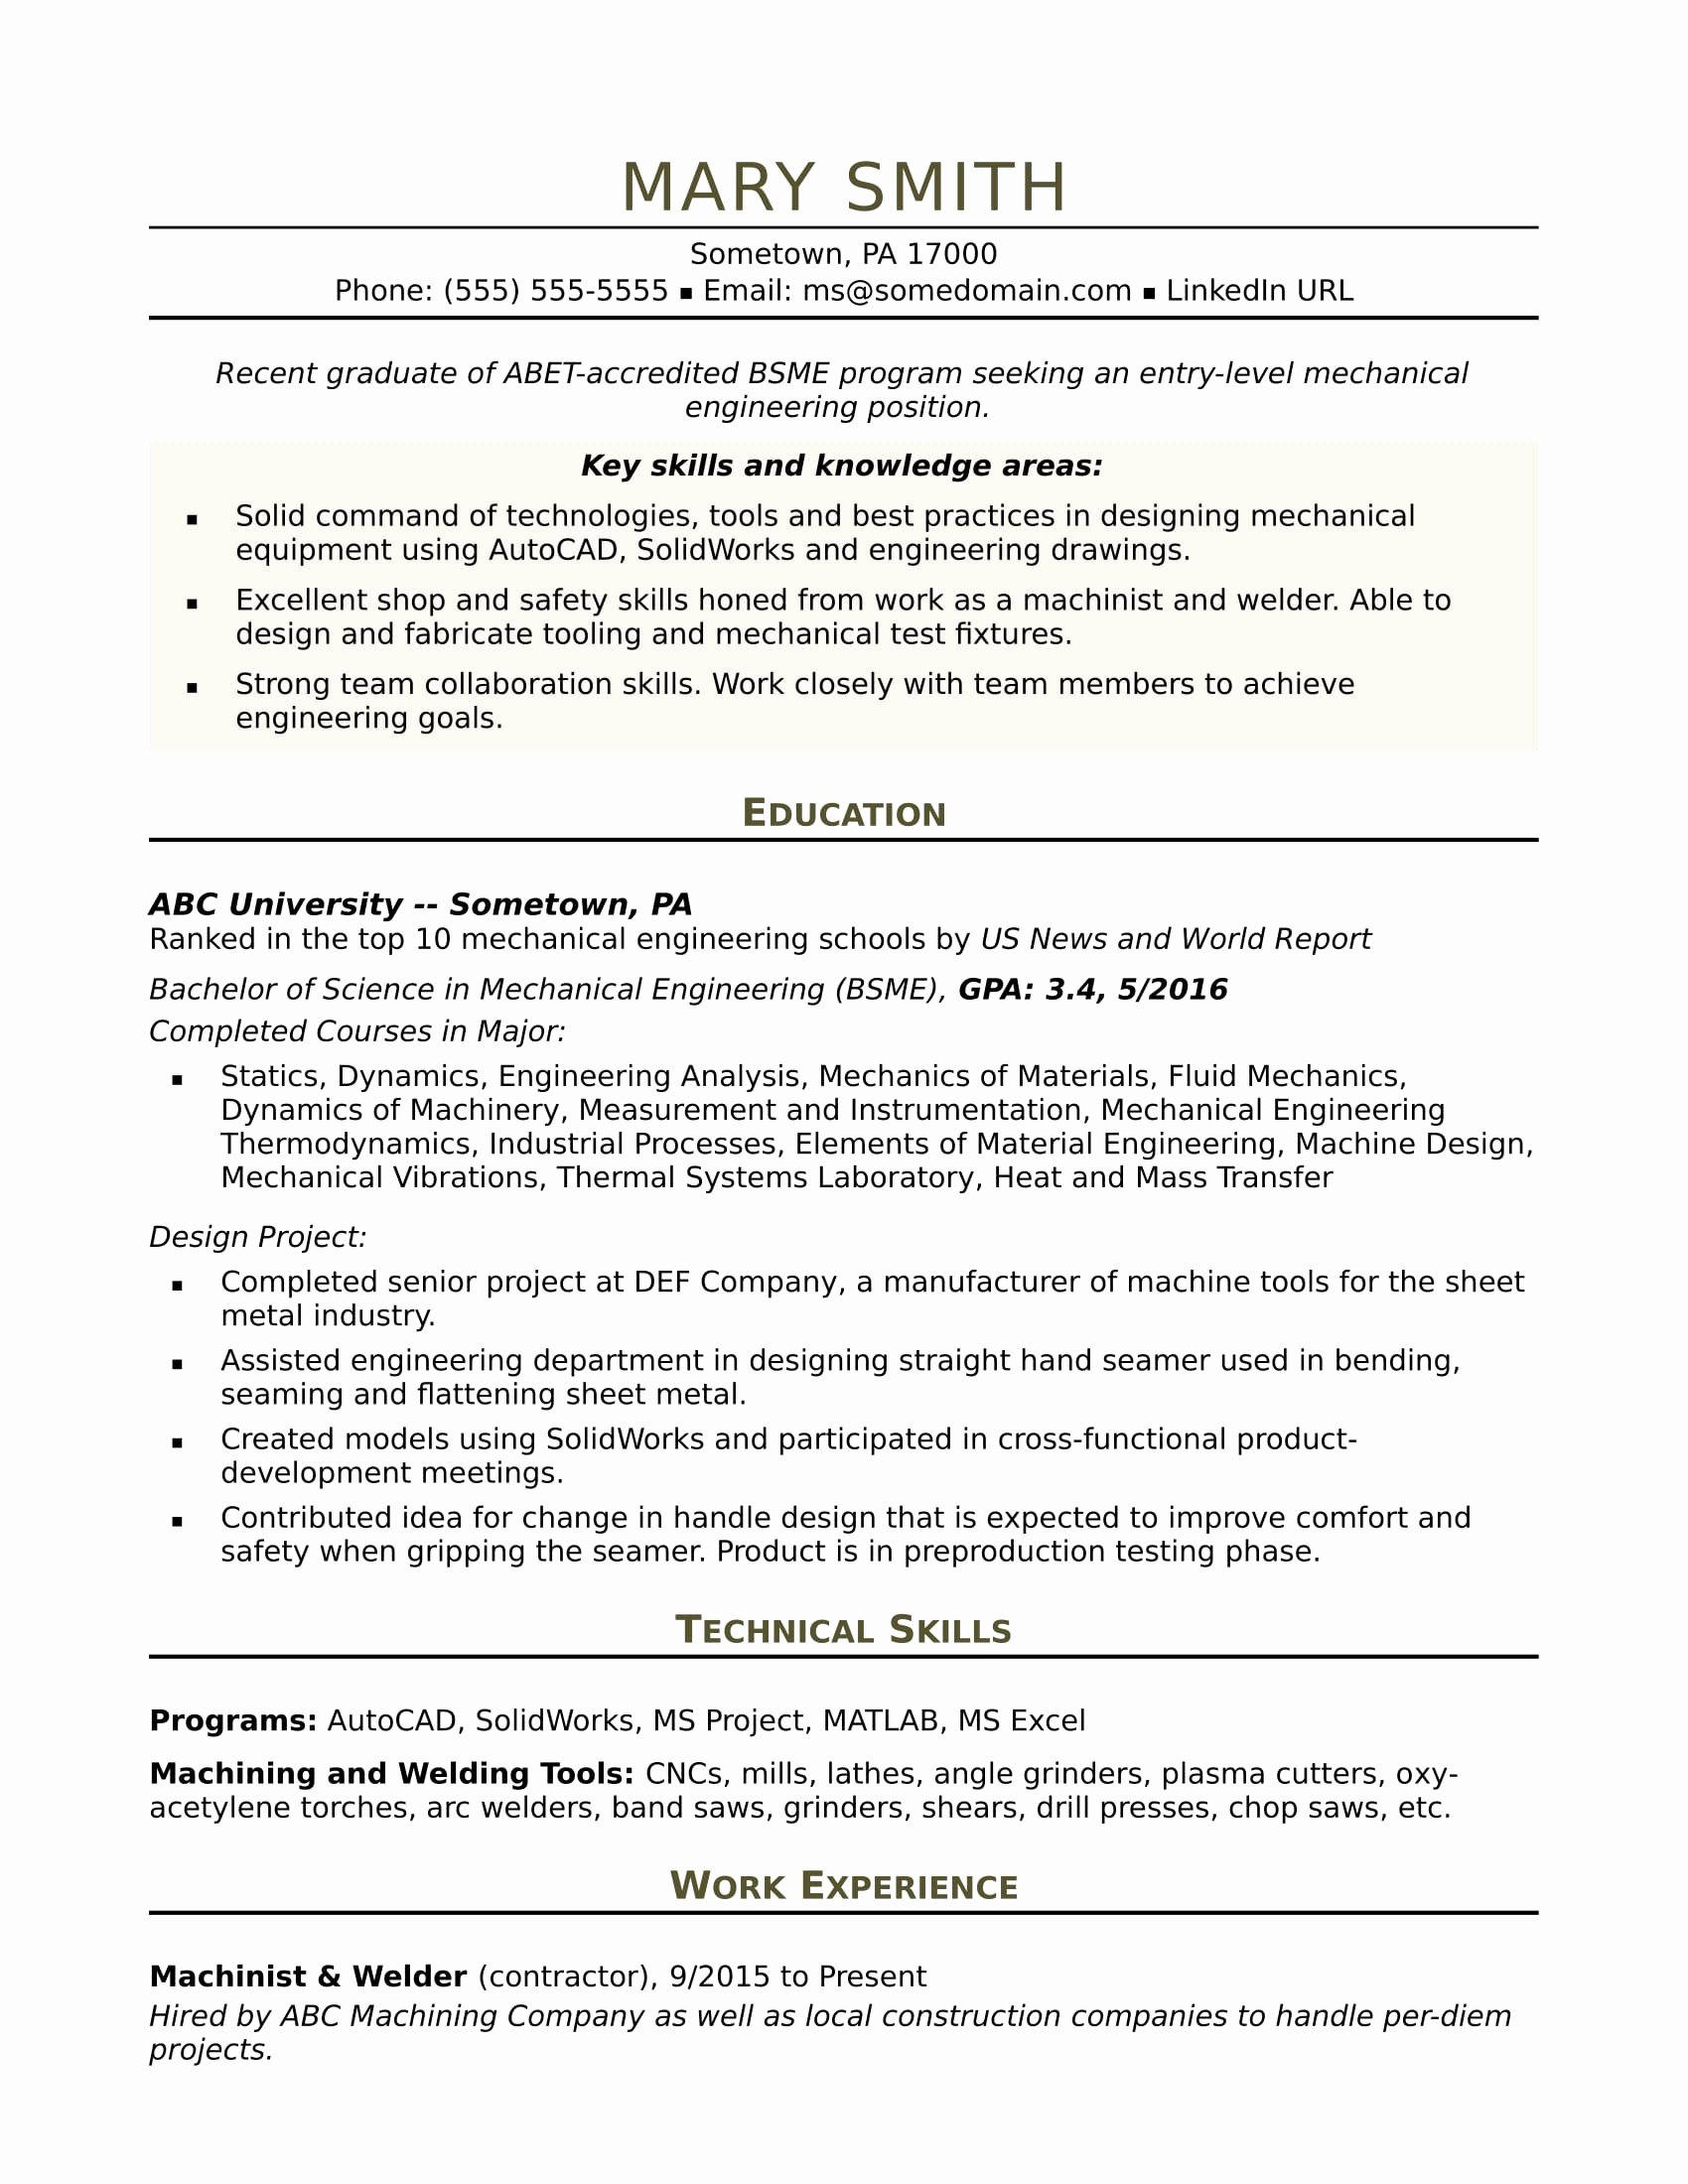 Pleted Resume Examples Sample Resume for An Entry Level